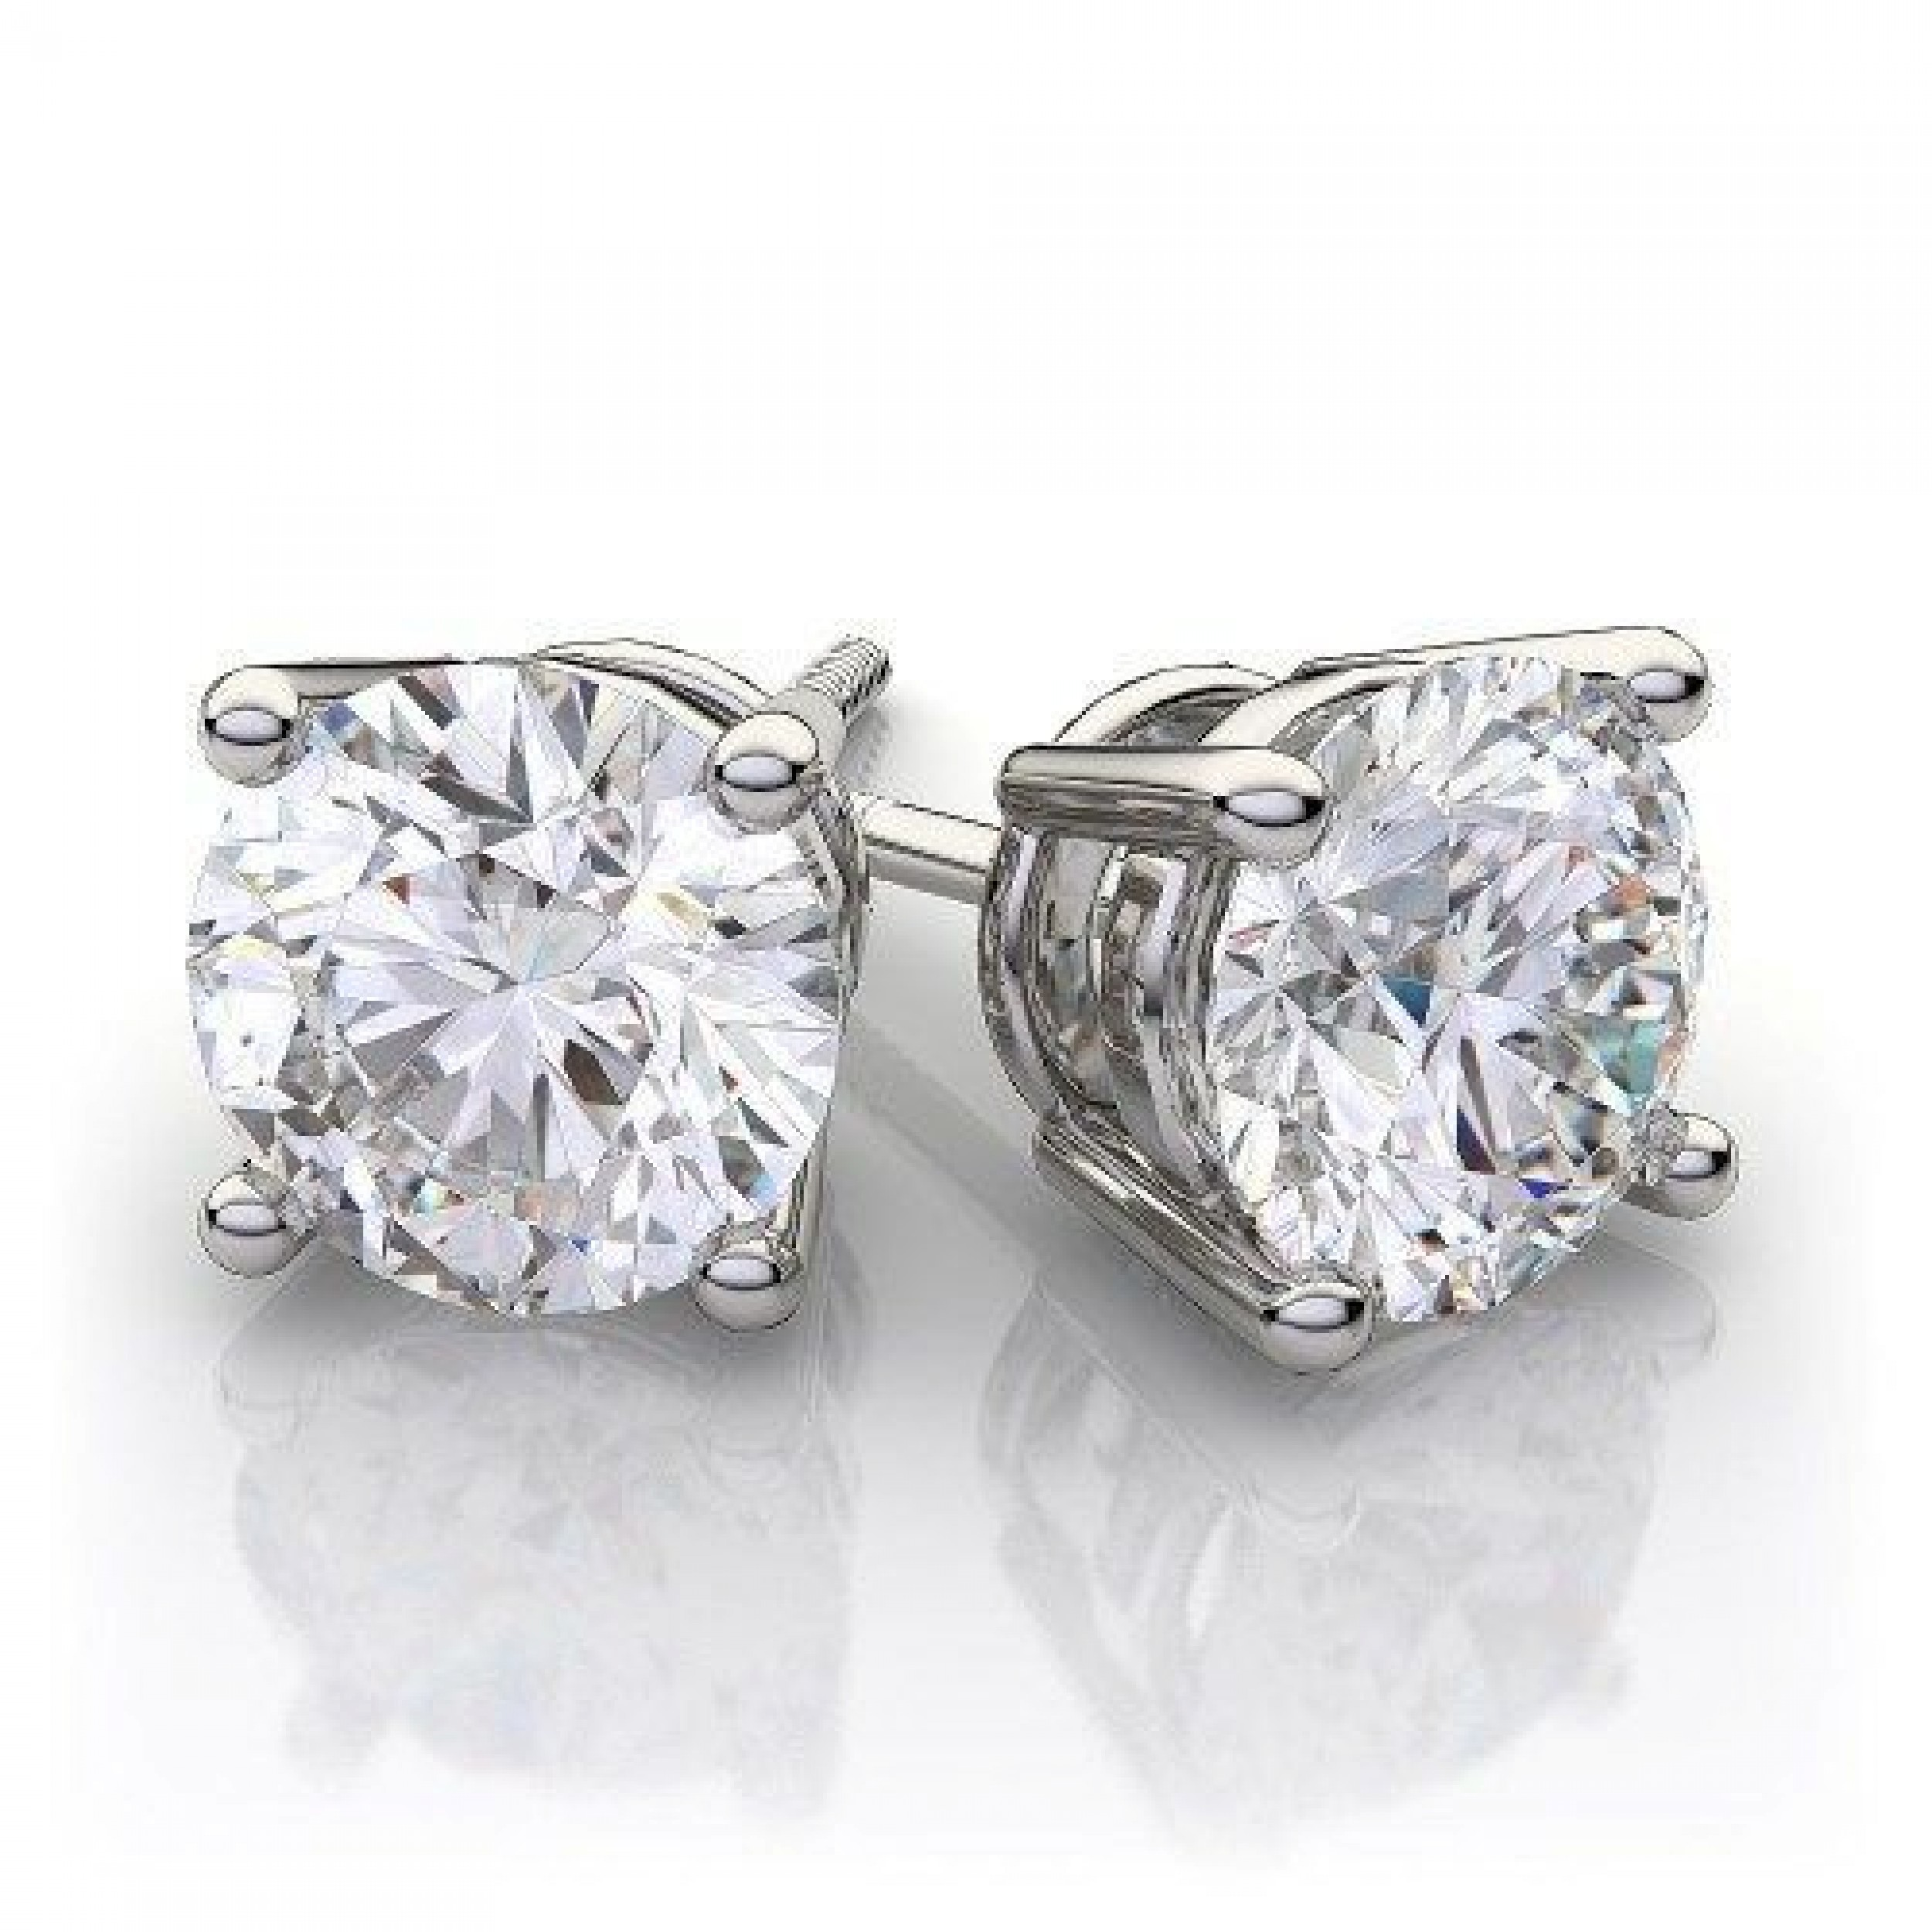 .70 ctw round diamond stud earrings in 14k white gold vs h ahahzsx